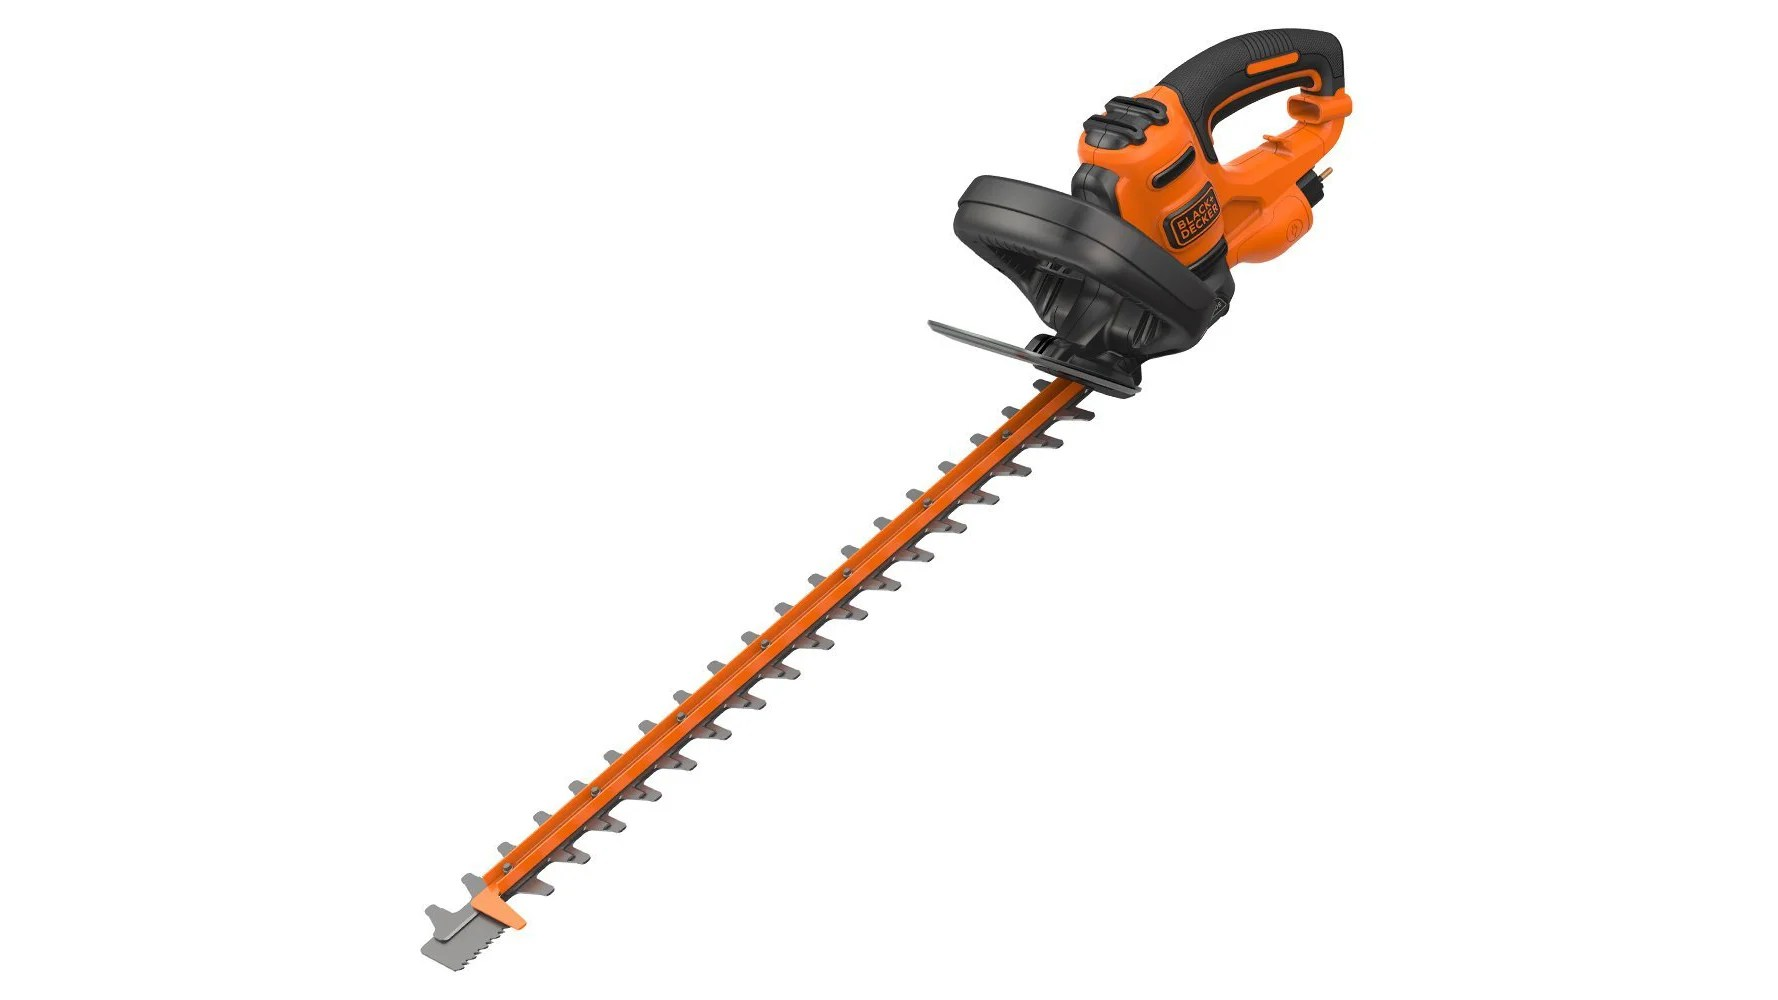 Gardenline Hedge Trimmer Battery Charger